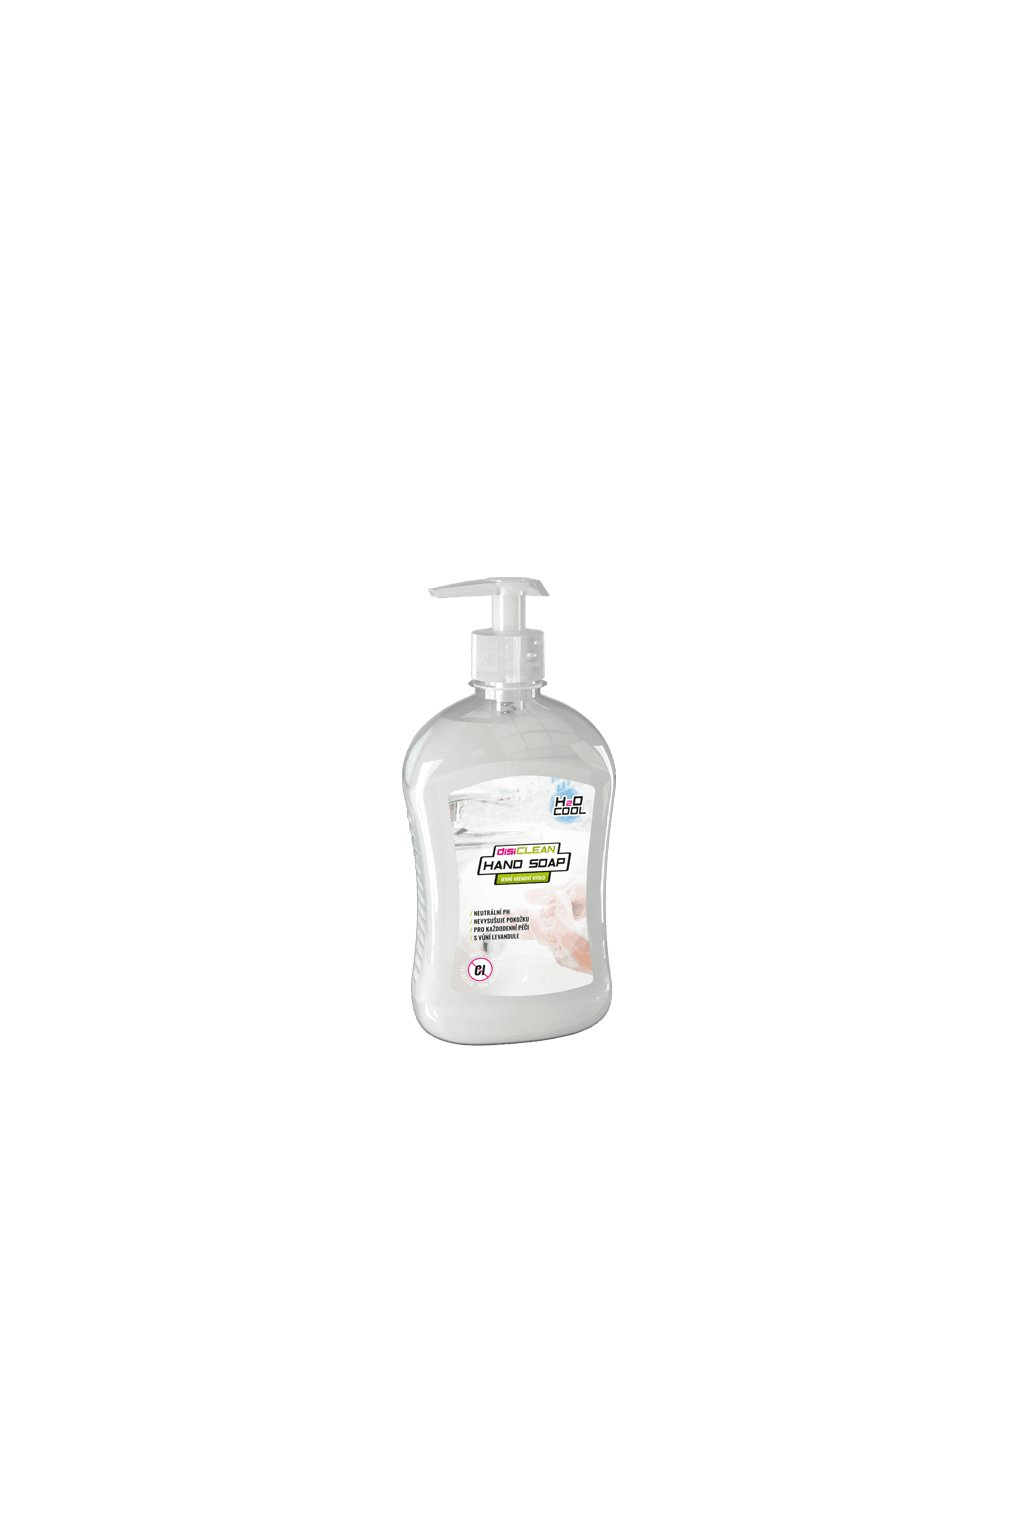 34 disiclean hand soap 0 5l